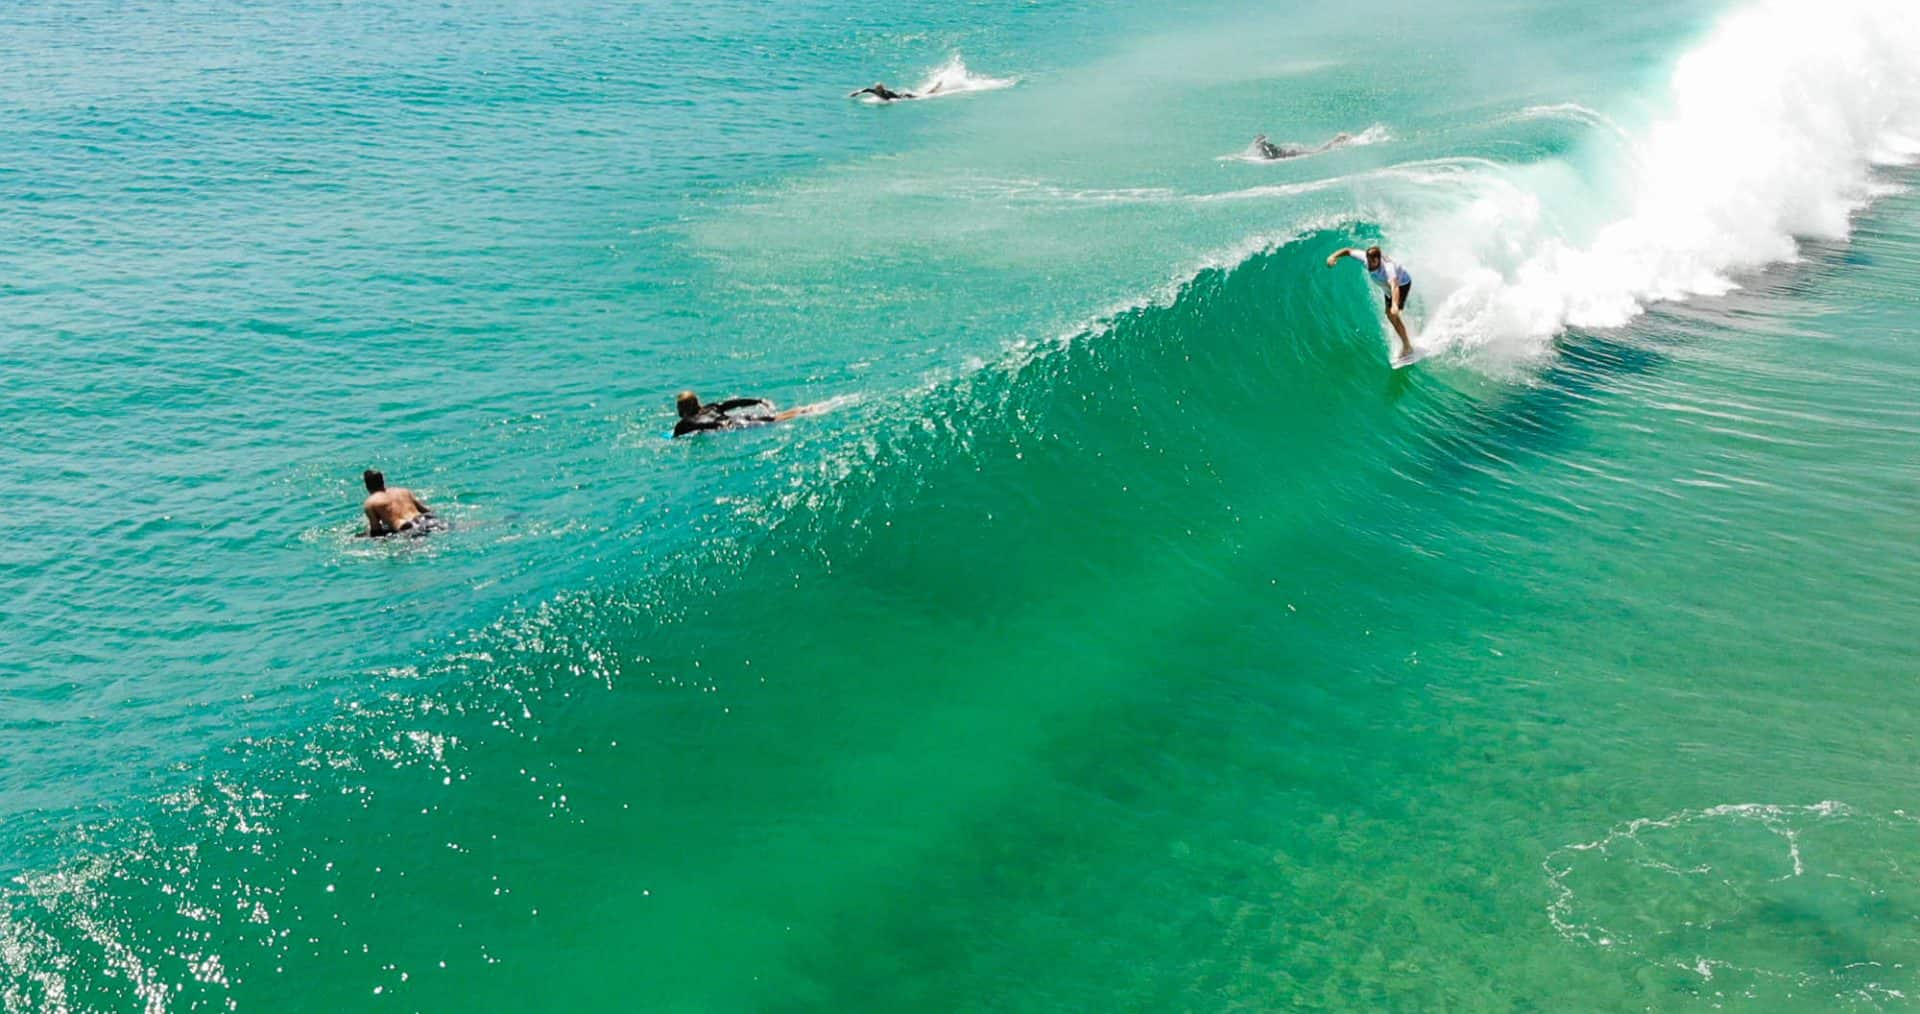 byron bay surf spots guide australia pass wreck tallows